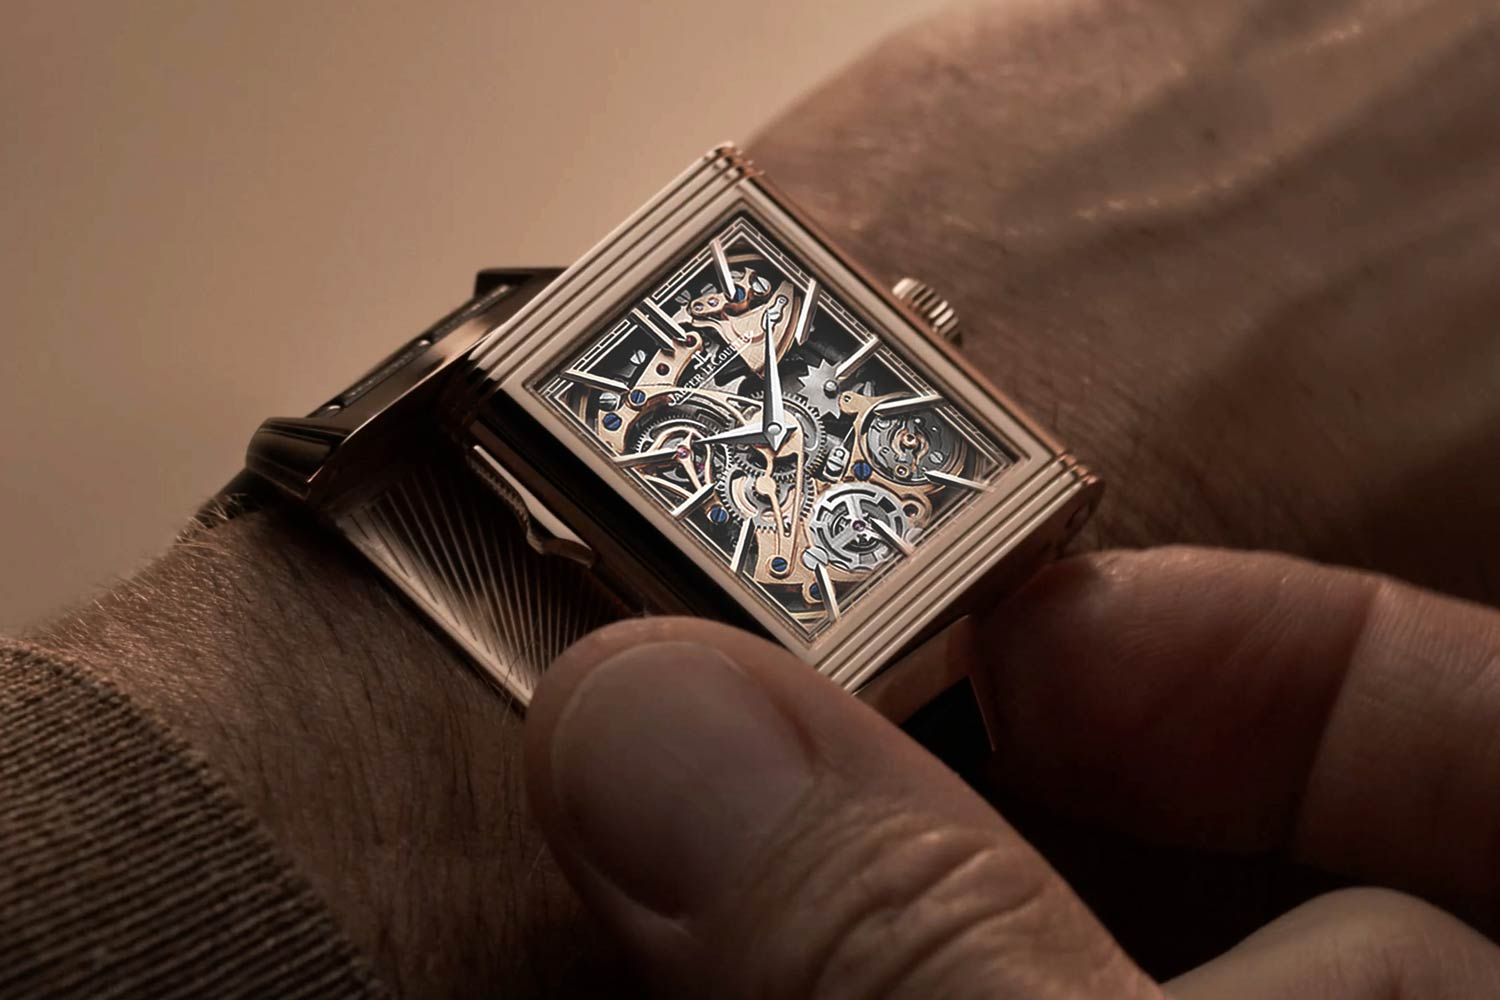 Limited to 10 pieces, the Reverso Tribute Minute Repeater is the perfect example of Jaeger-LeCoultre's exceptional expertise in presenting a classic complication in an unusual yet timeless case.